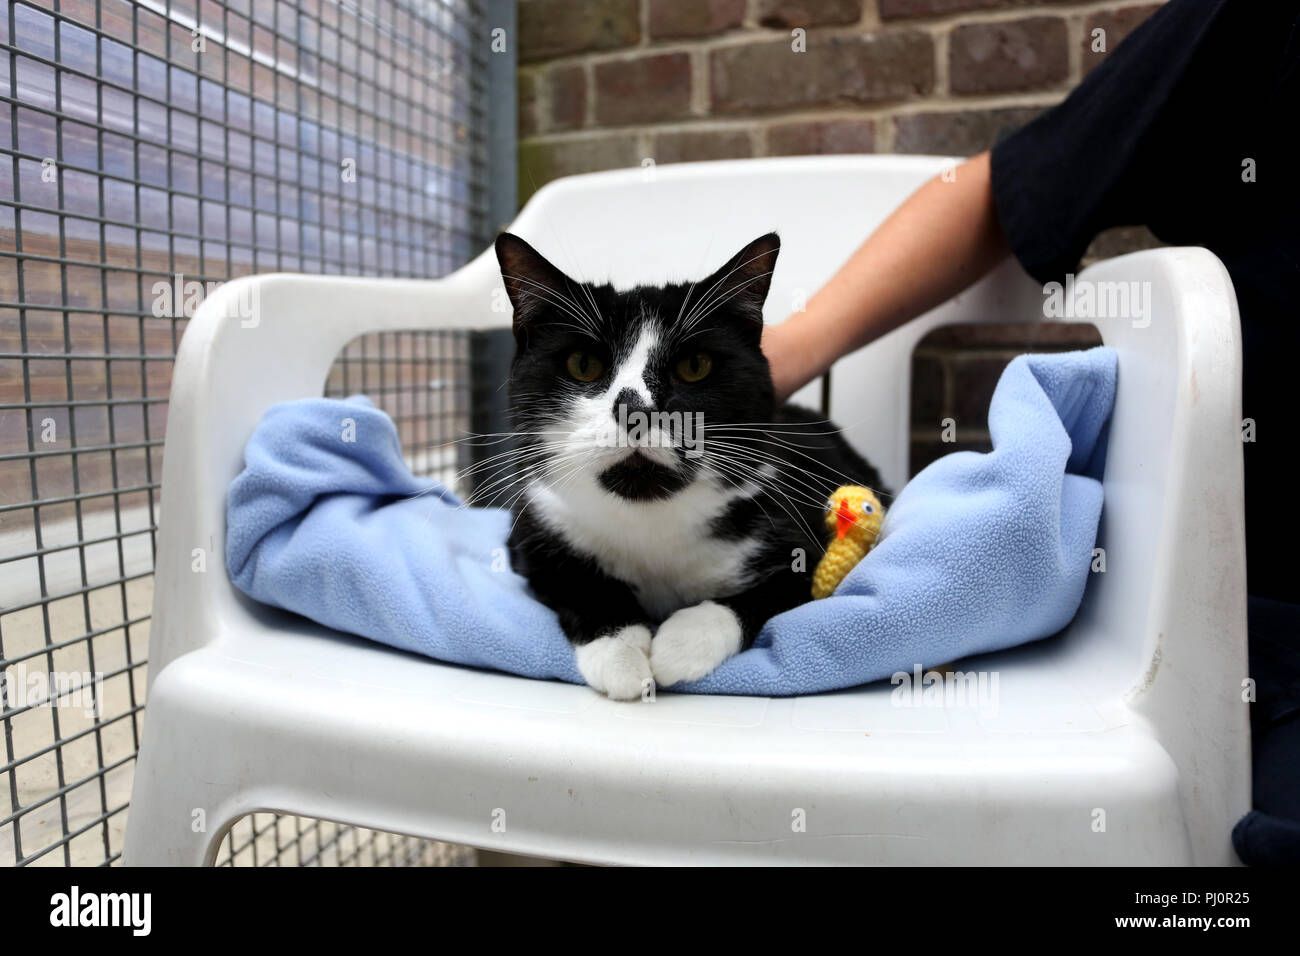 General views of the RSPCA Mount Noddy Re-Homing Centre near Chichester, West Sussex, UK. - Stock Image